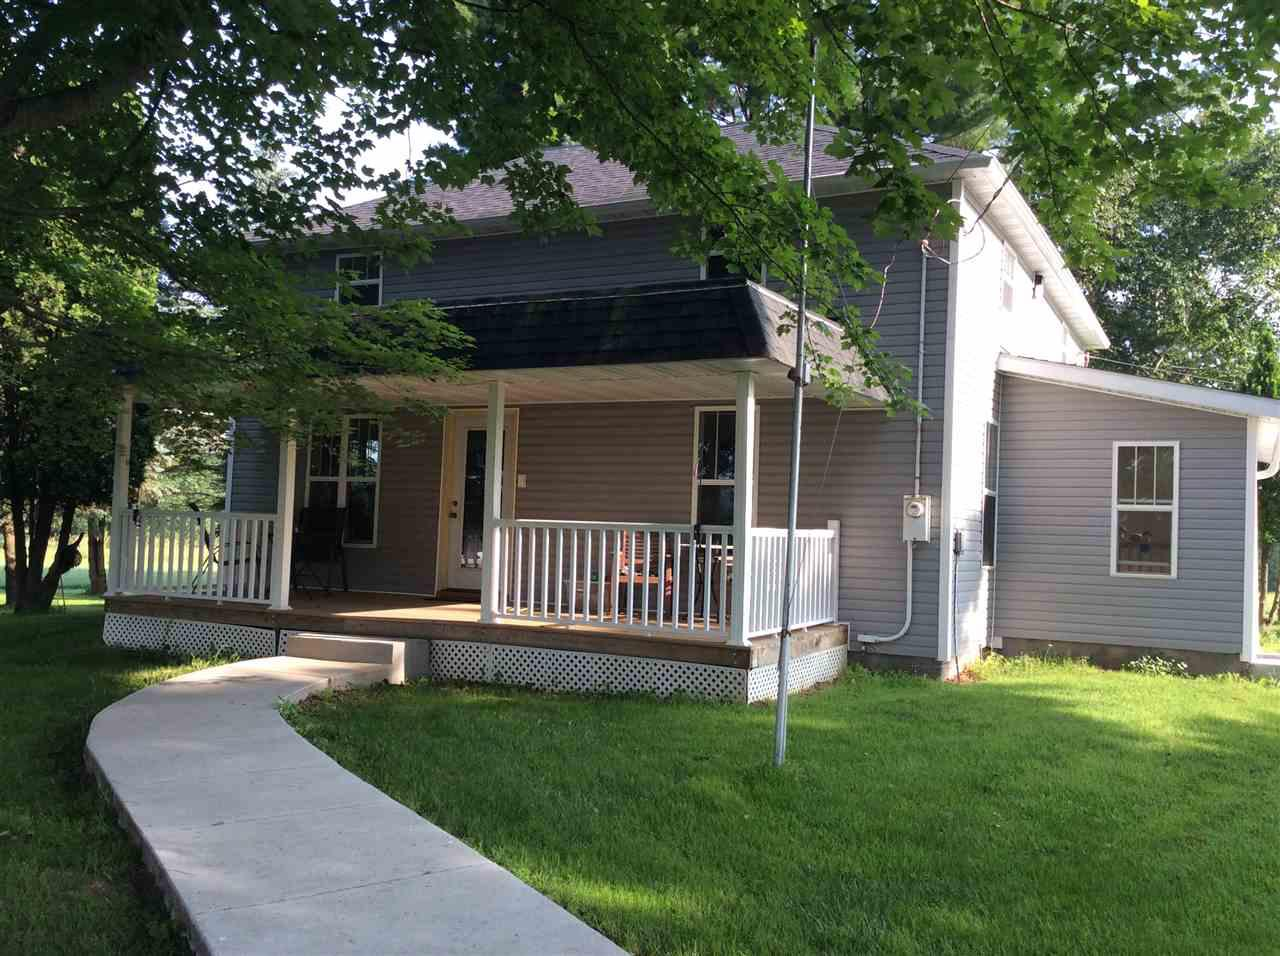 Homes For Sale With Pole Barn In Plymouth Wi Realty